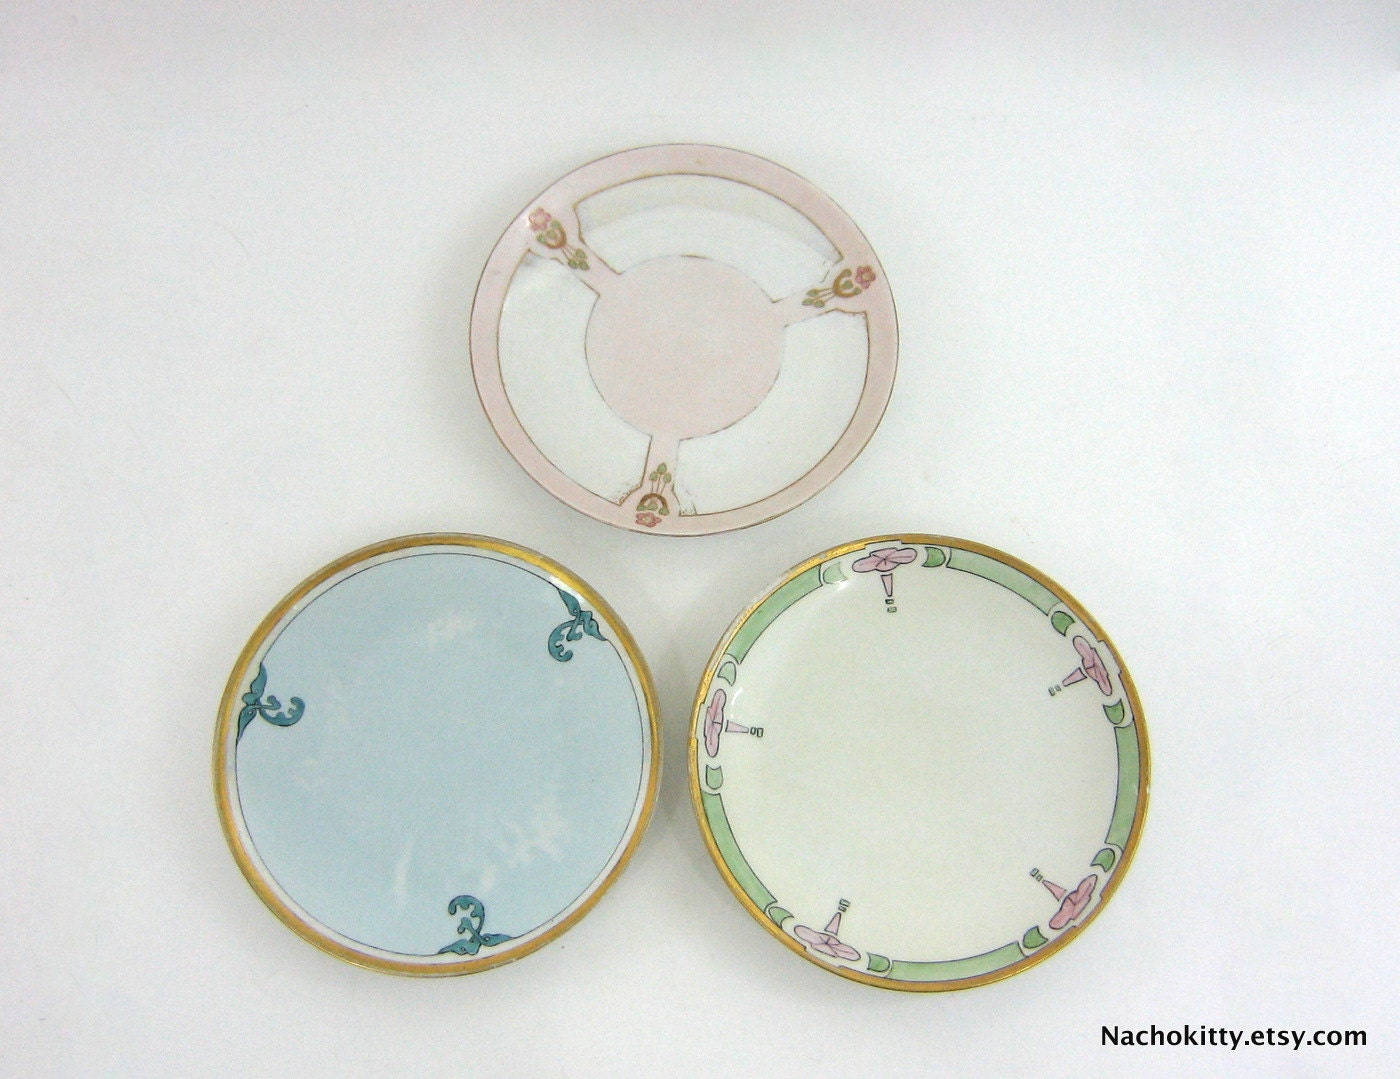 plate collection on wall